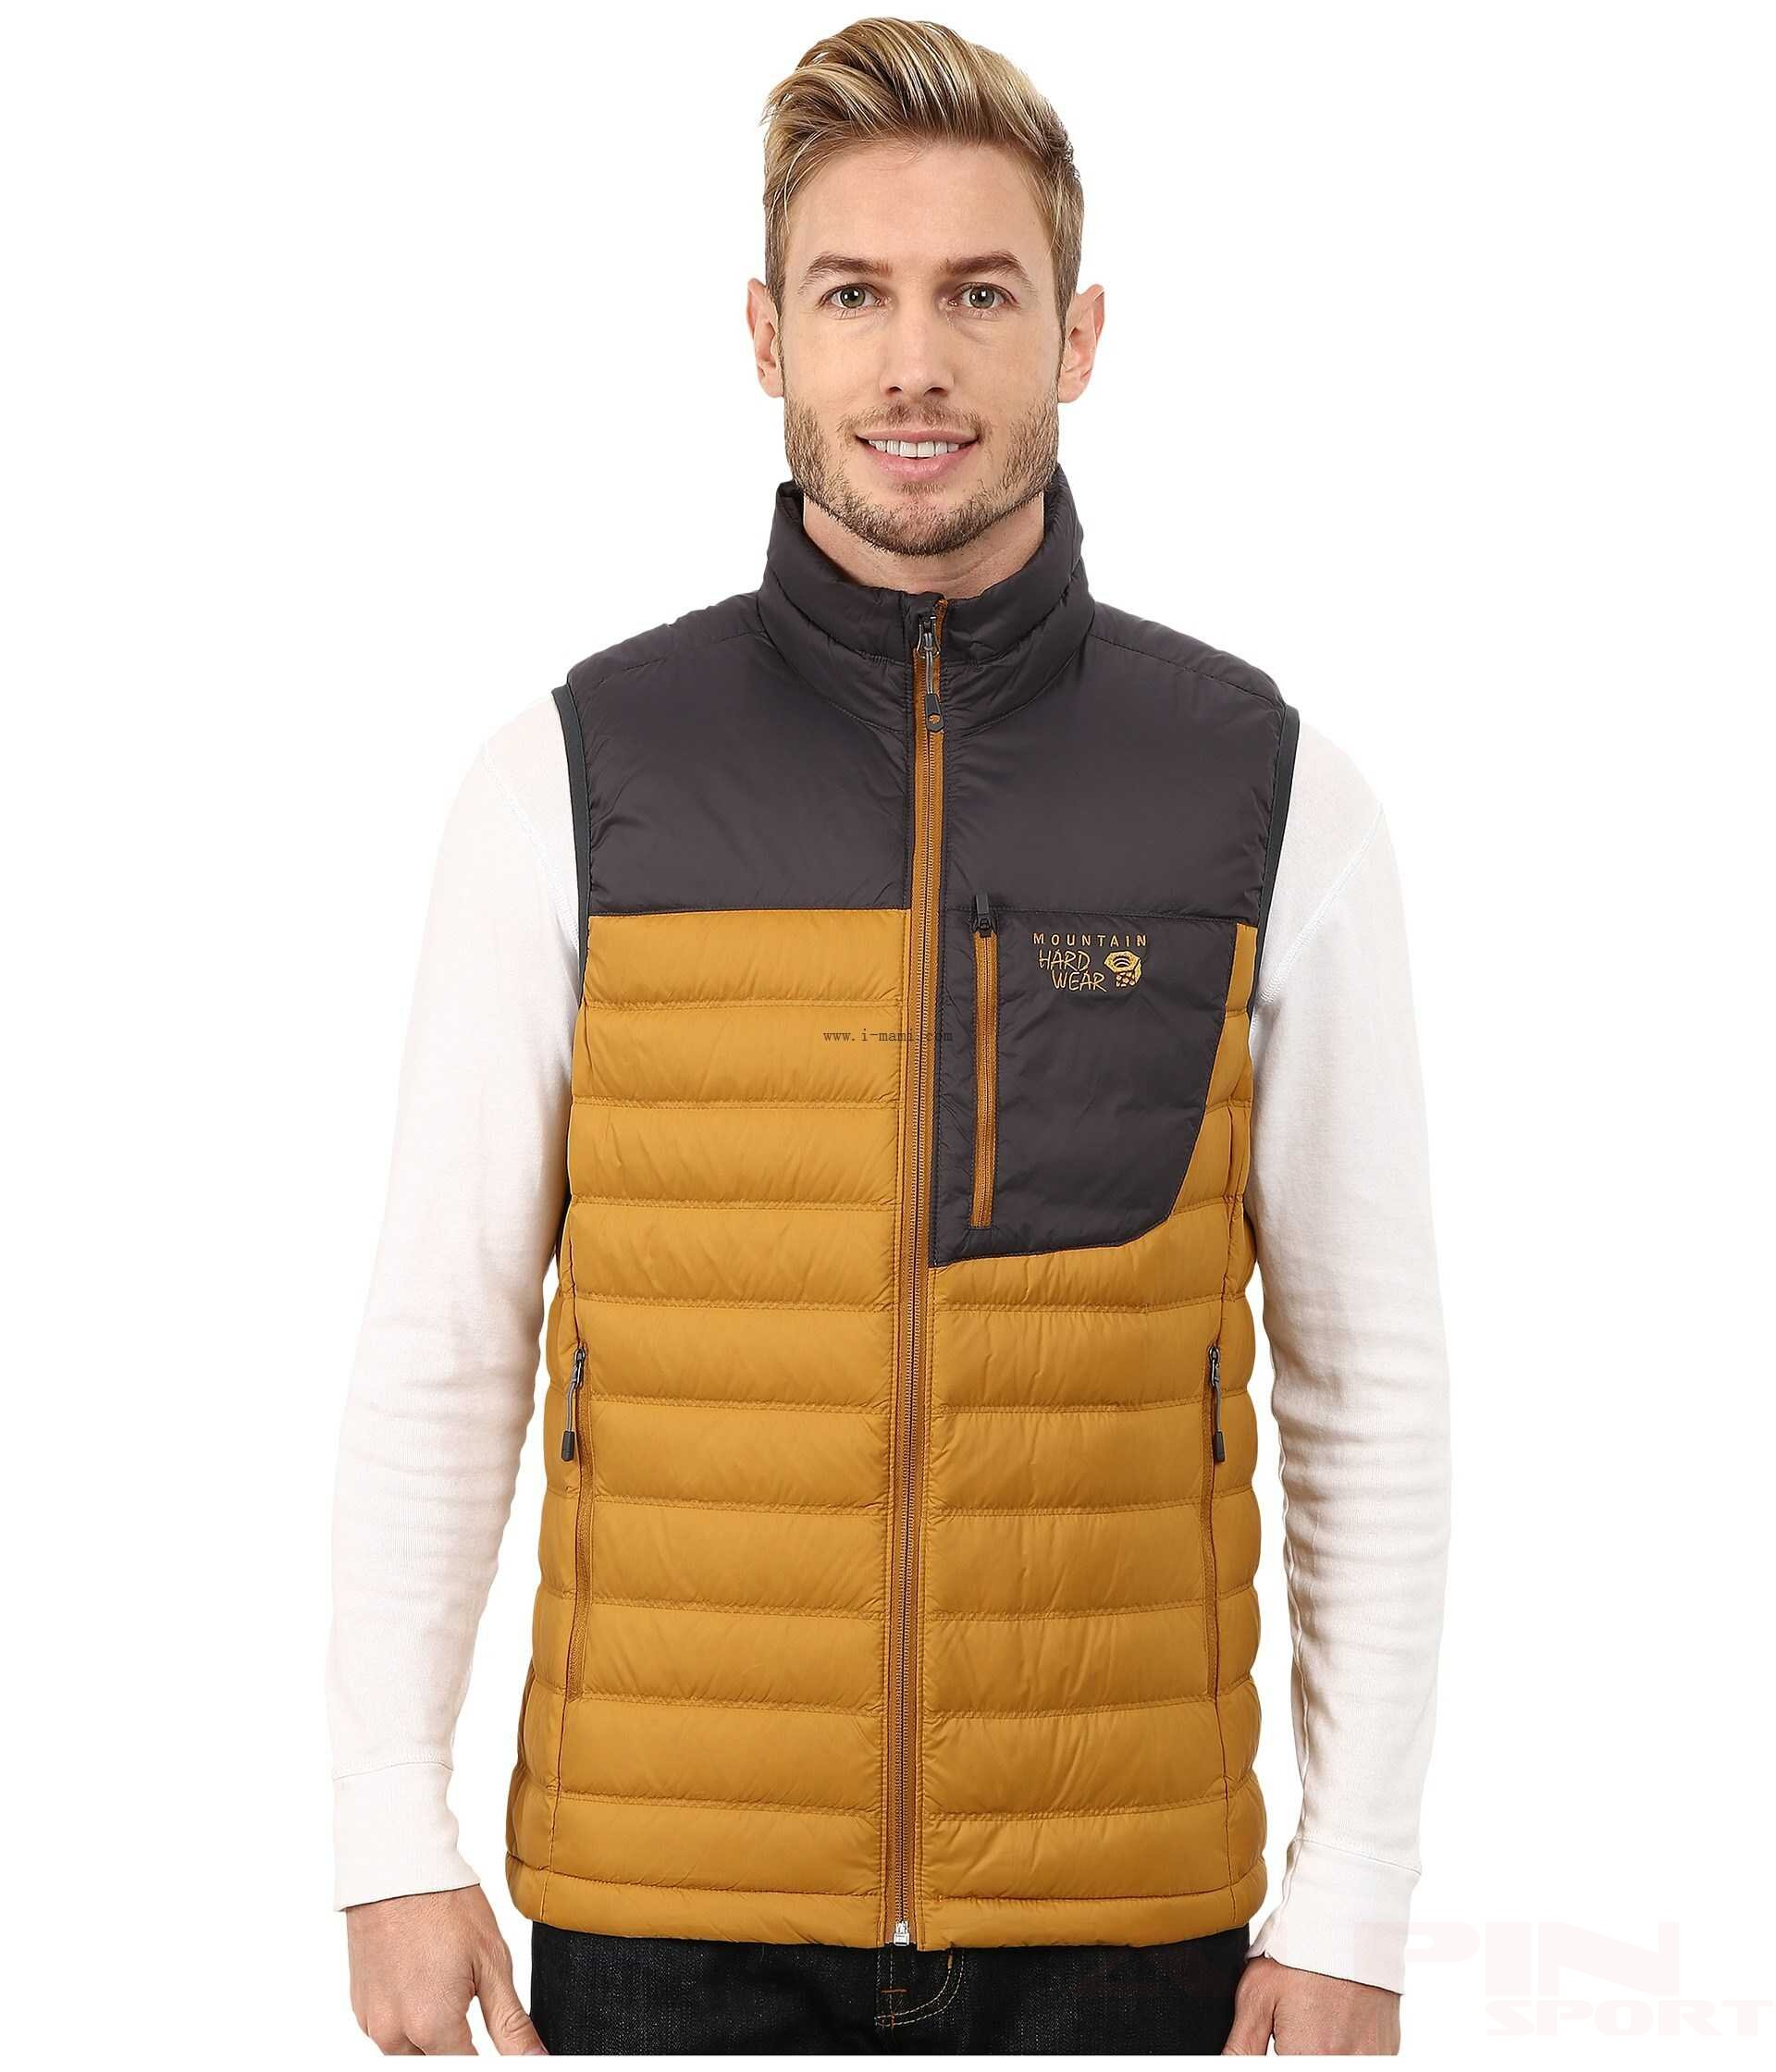 Kamizelka MHW Dynotherm OM6995 exclusive collection Mountain Hardwear Dynotherm Down Vest Underbrush Shark   Men Clothing XI590